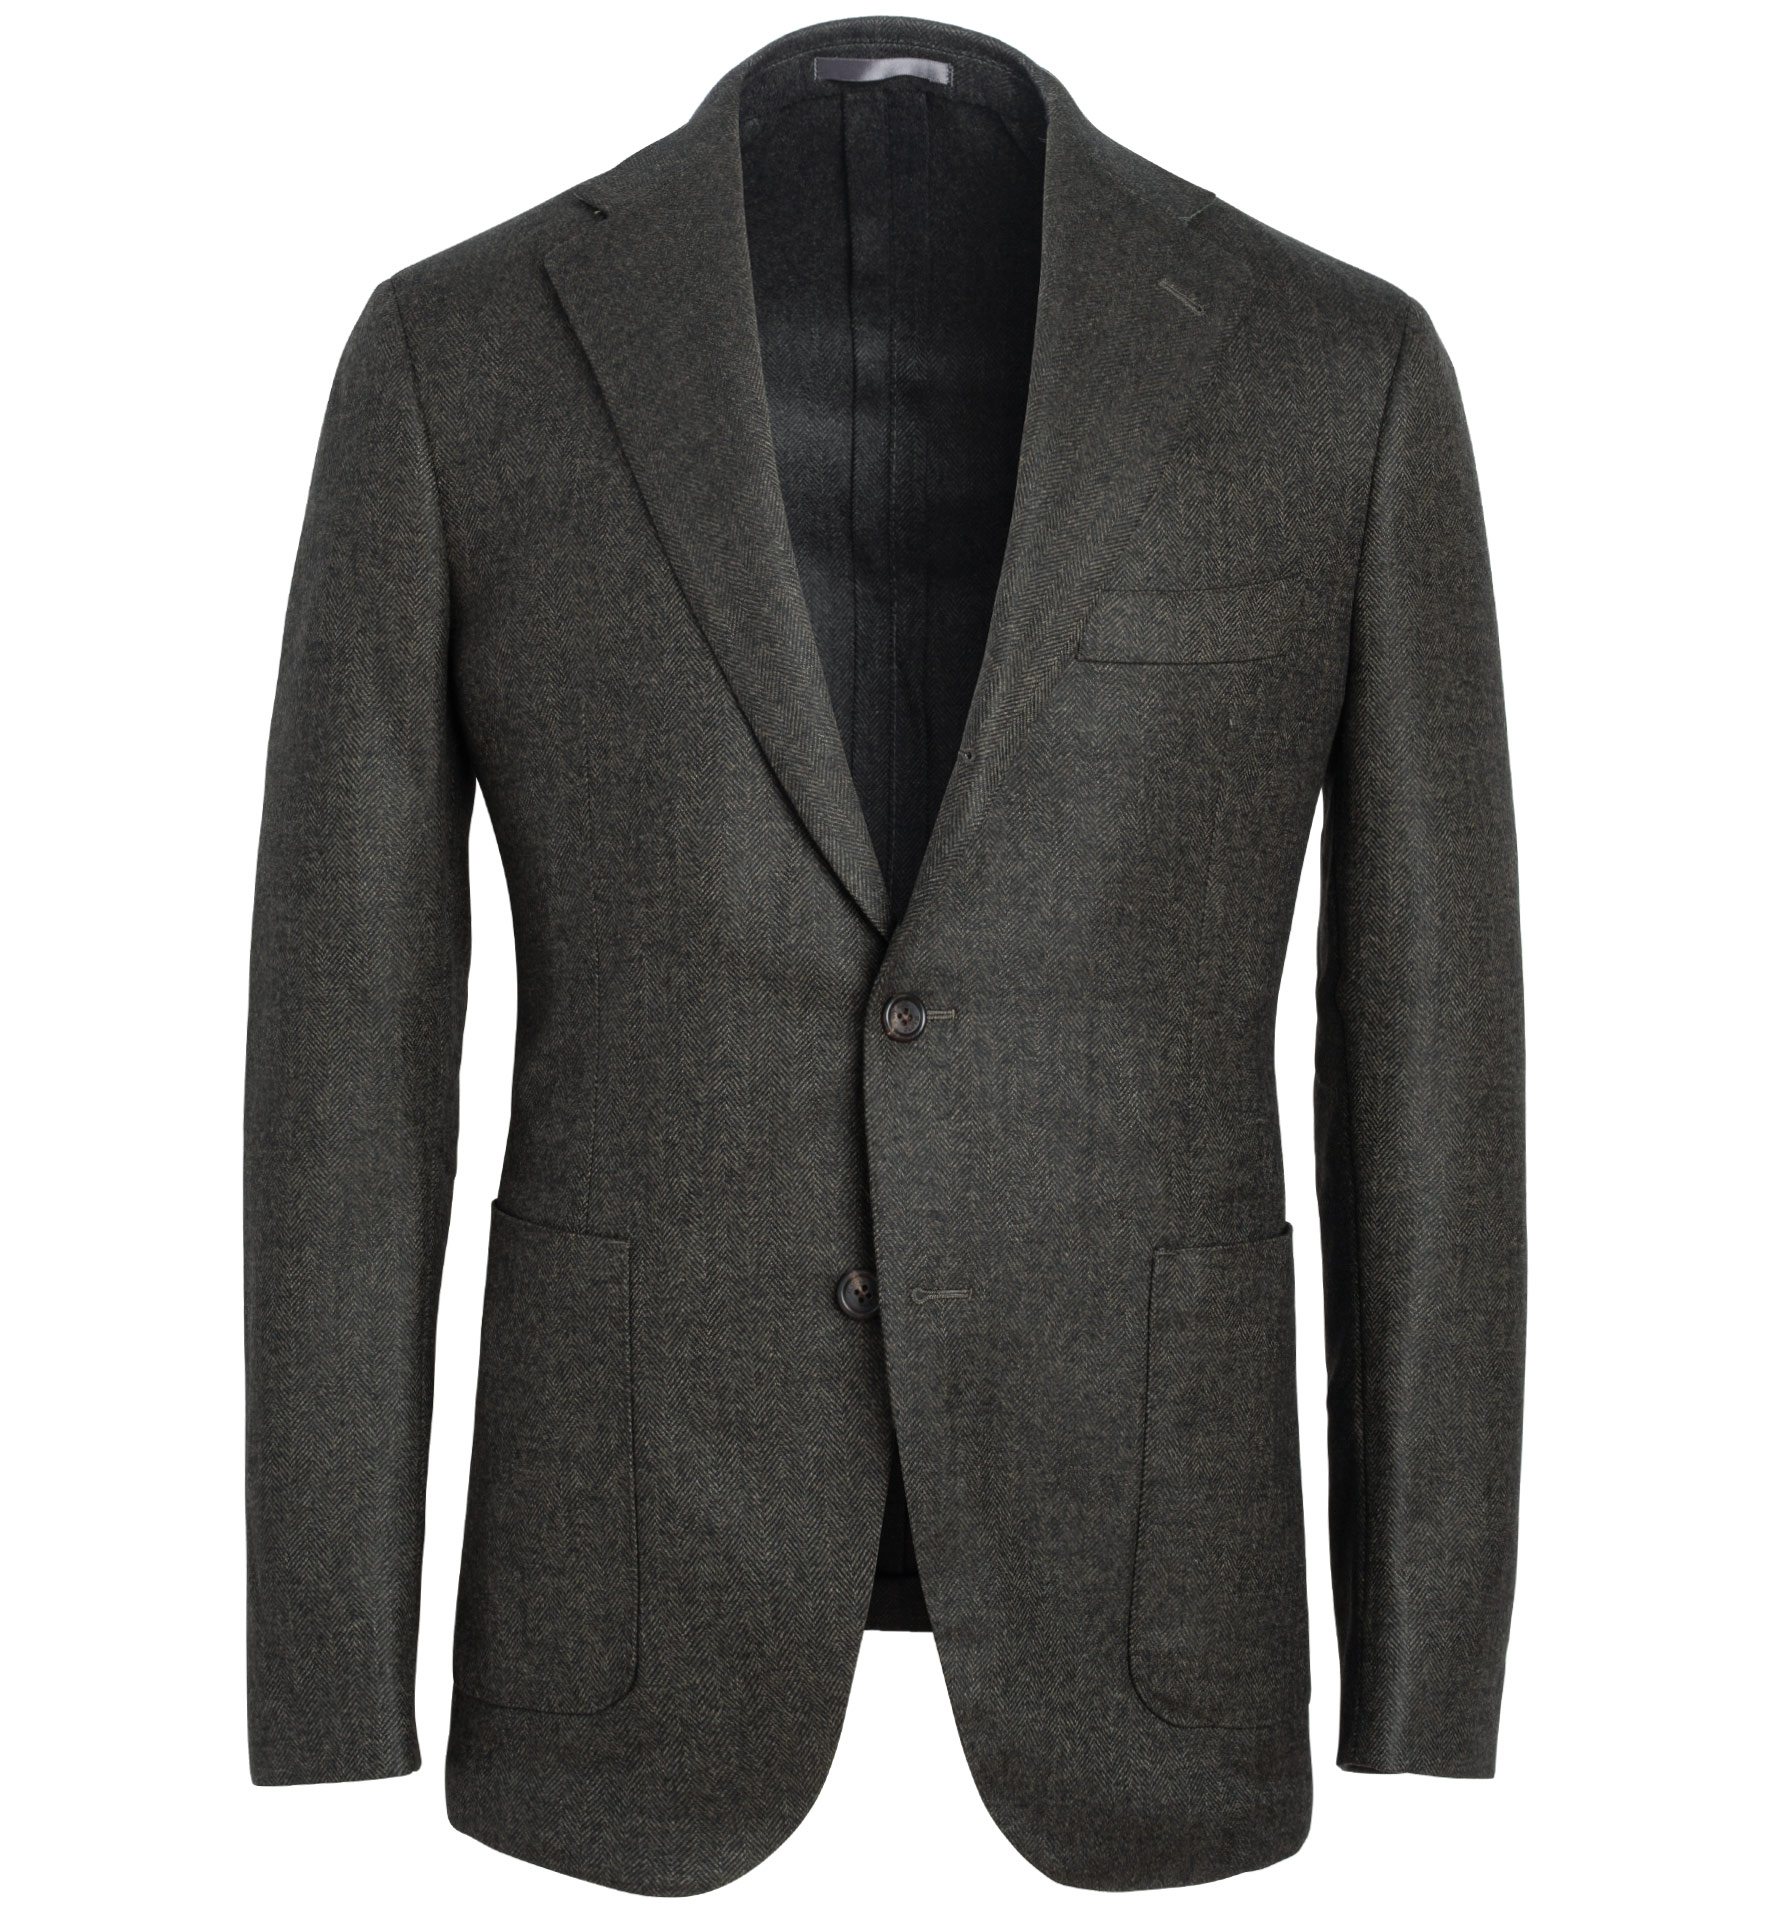 Zoom Image of Bedford Pine Wool Herringbone Jacket